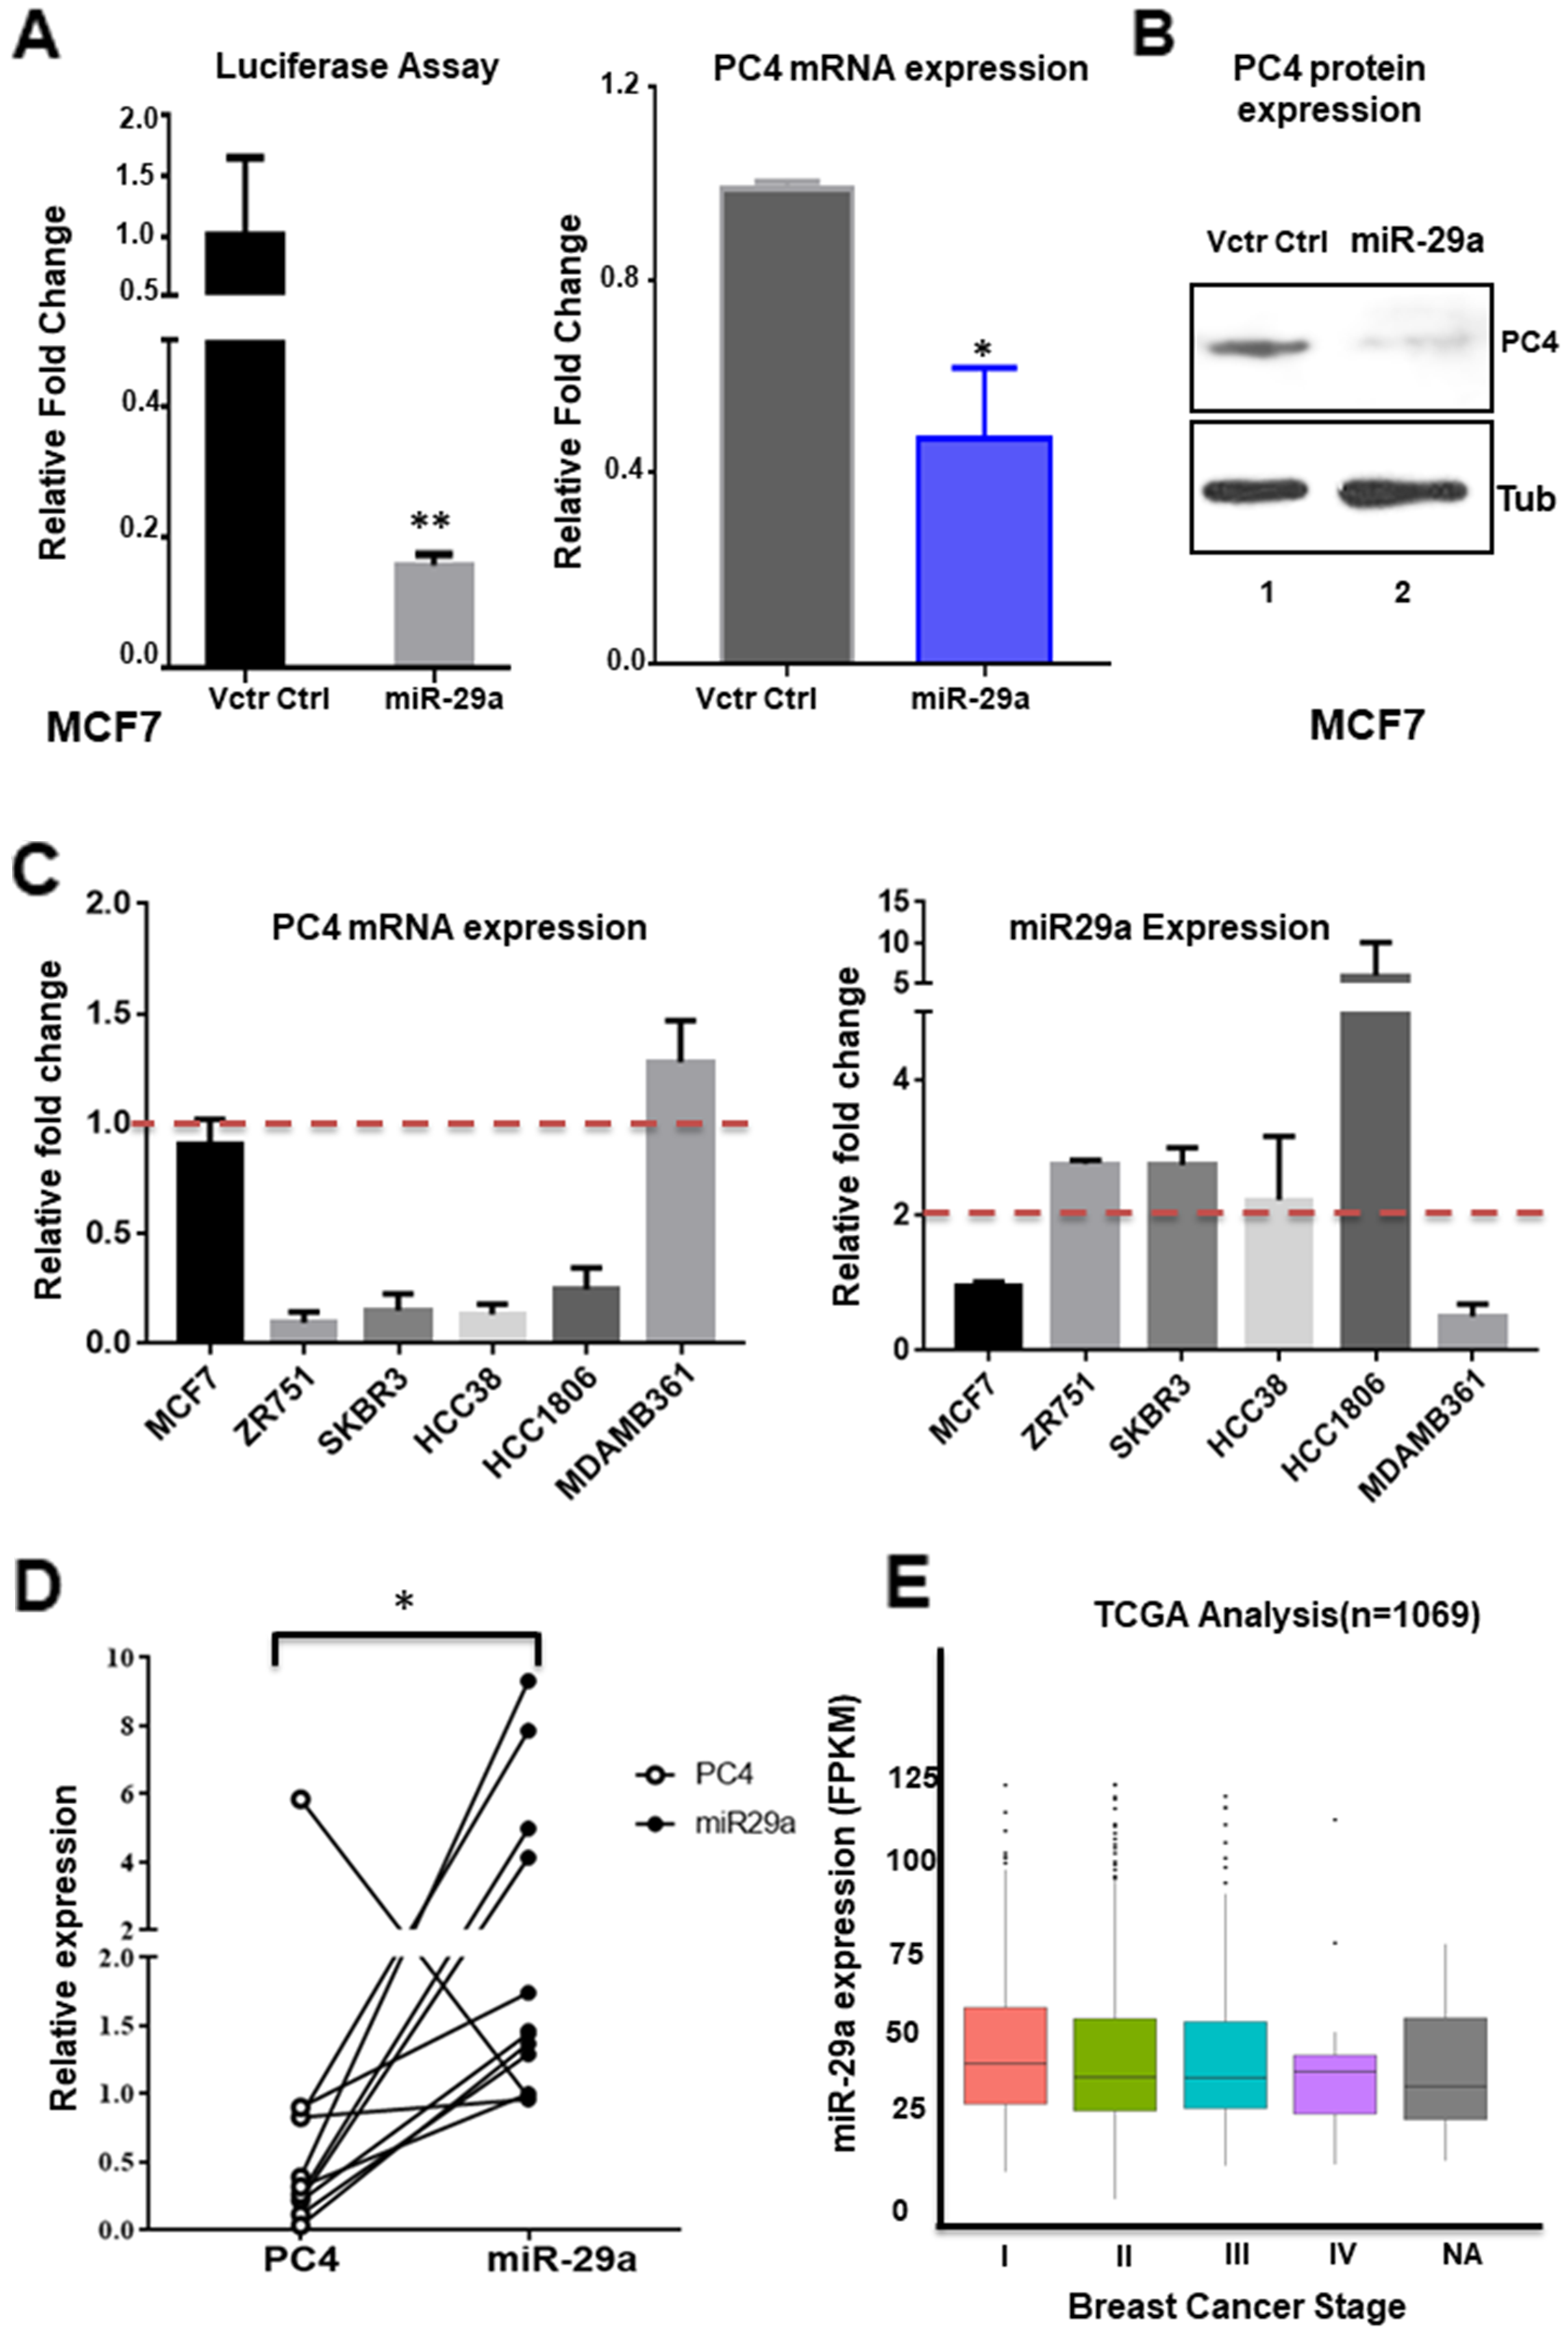 miR-29 modulates PC4 expression in Breast cancer cells.